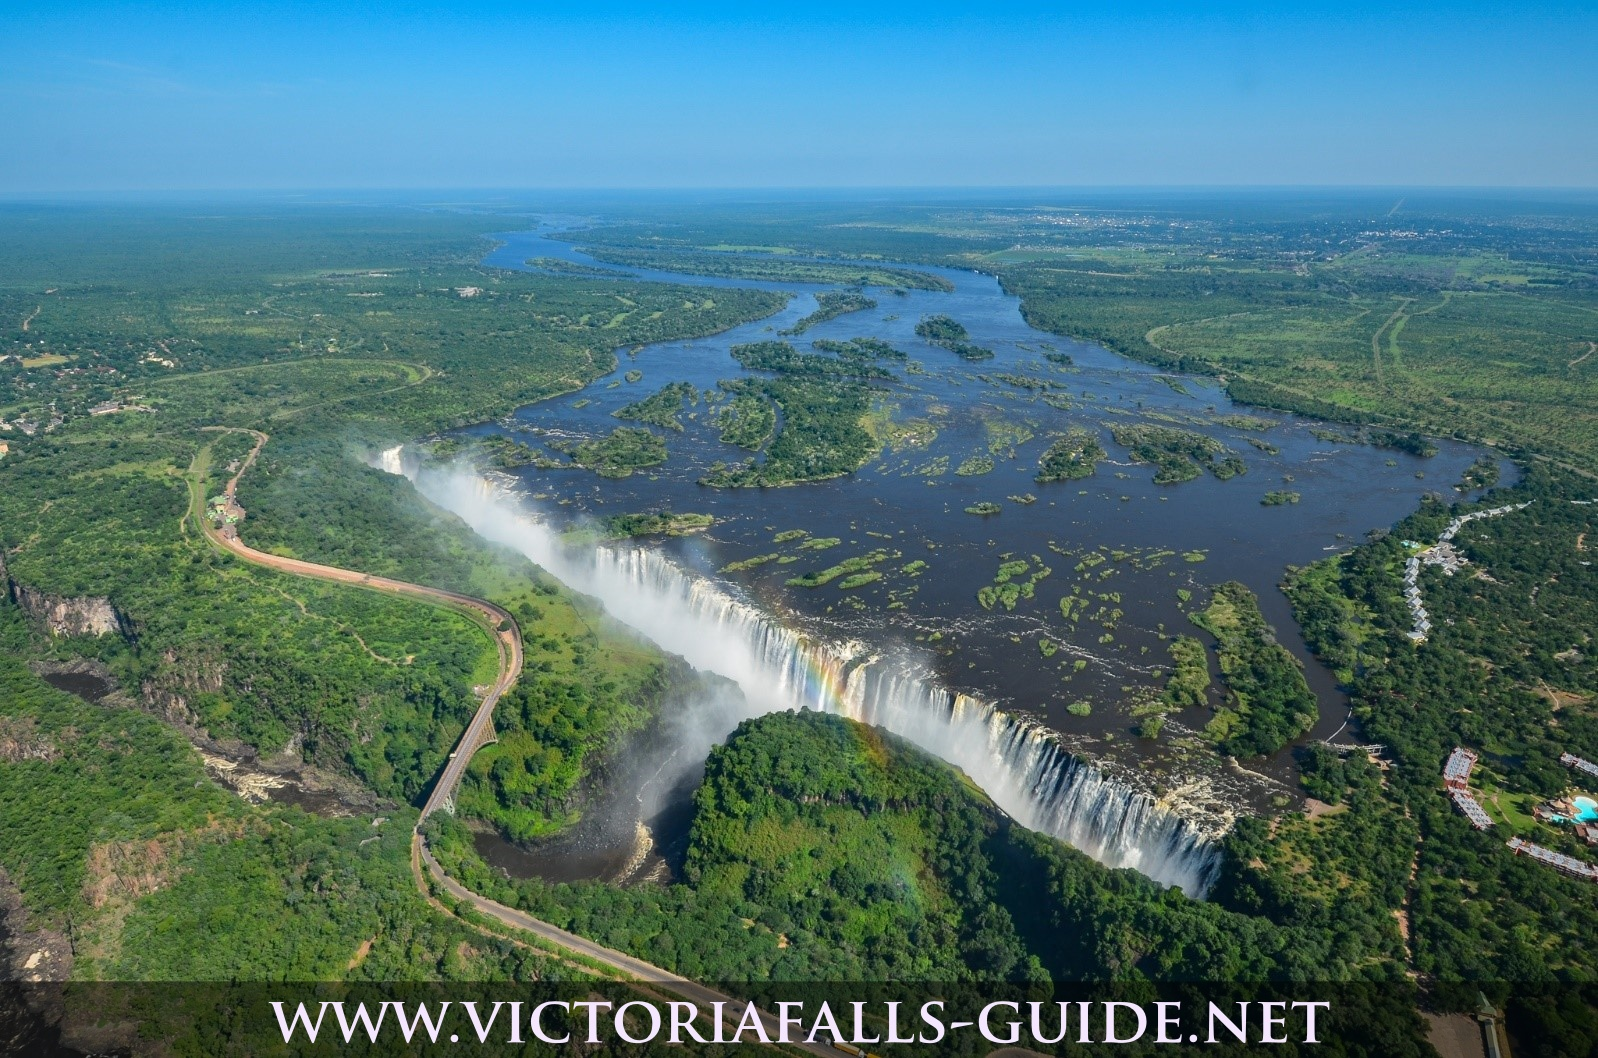 Aerial photo of Victoria Falls taken 30 January 2015